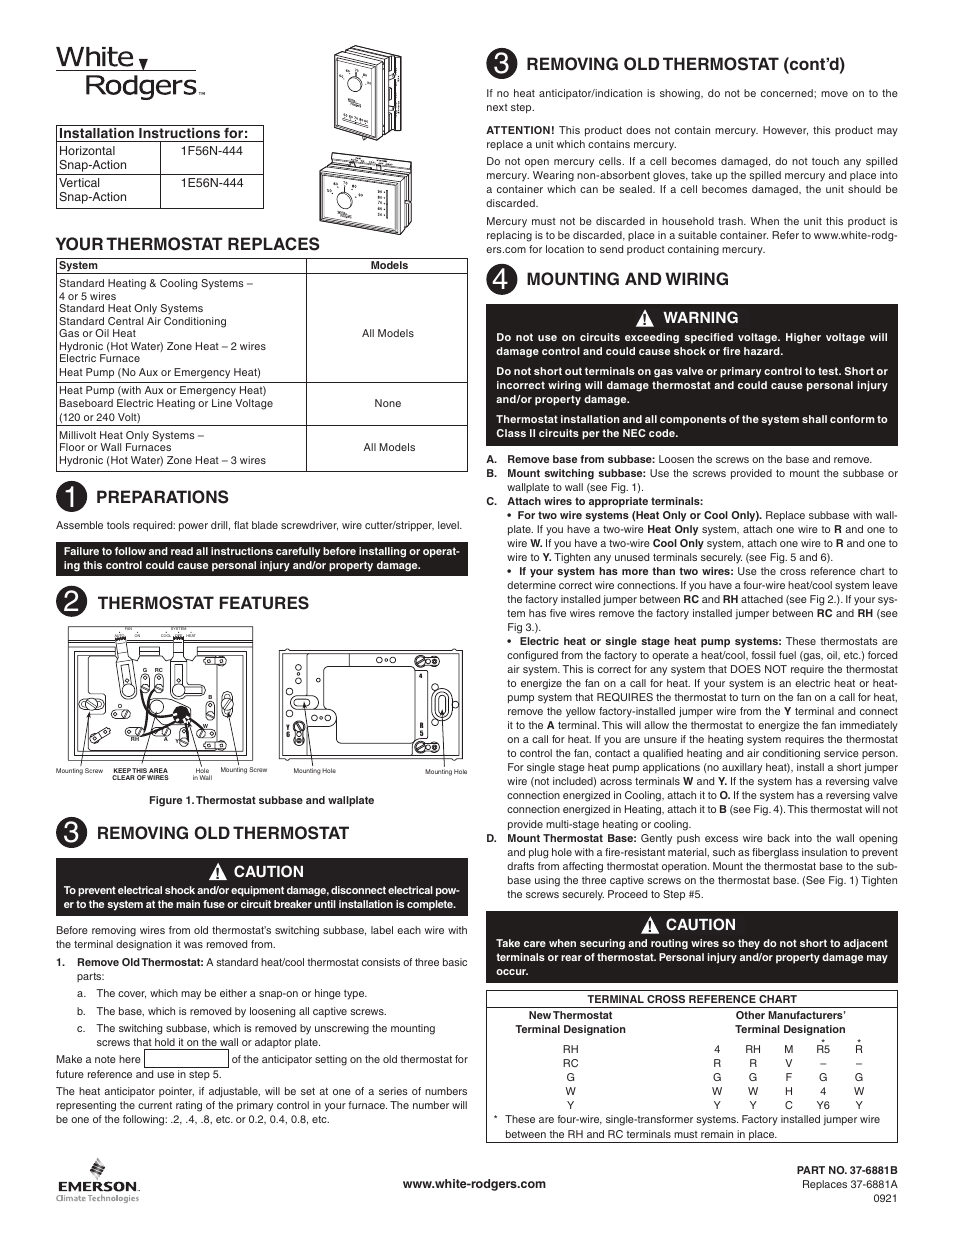 White Rodgers 1E56N-444 User Manual | 8 pages | Also for: 1F56N-444